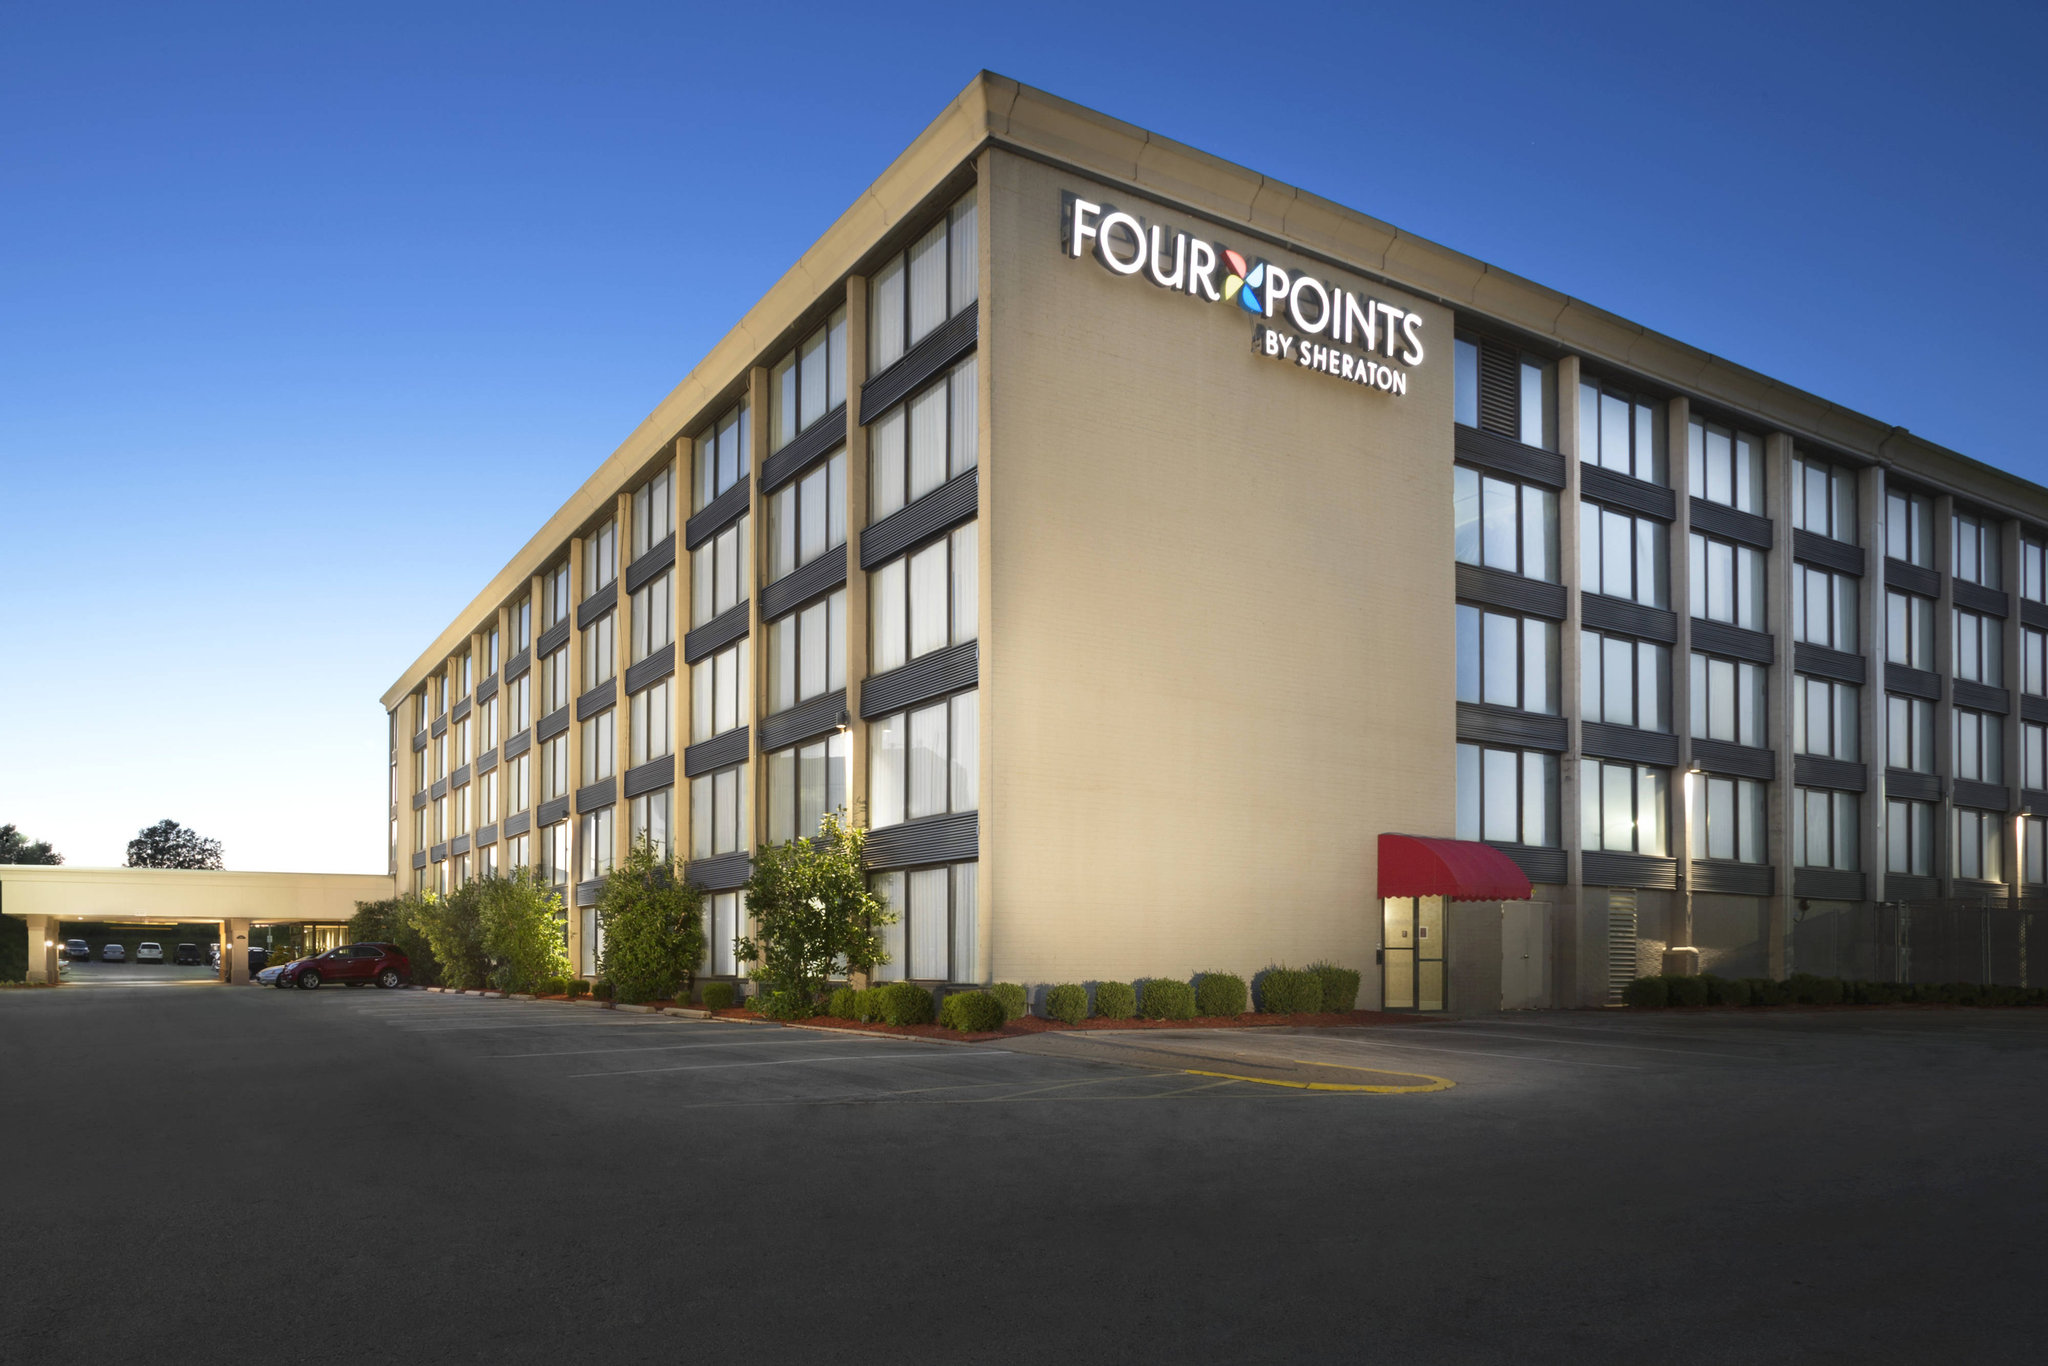 Four Points by Sheraton Kansas City Arpt